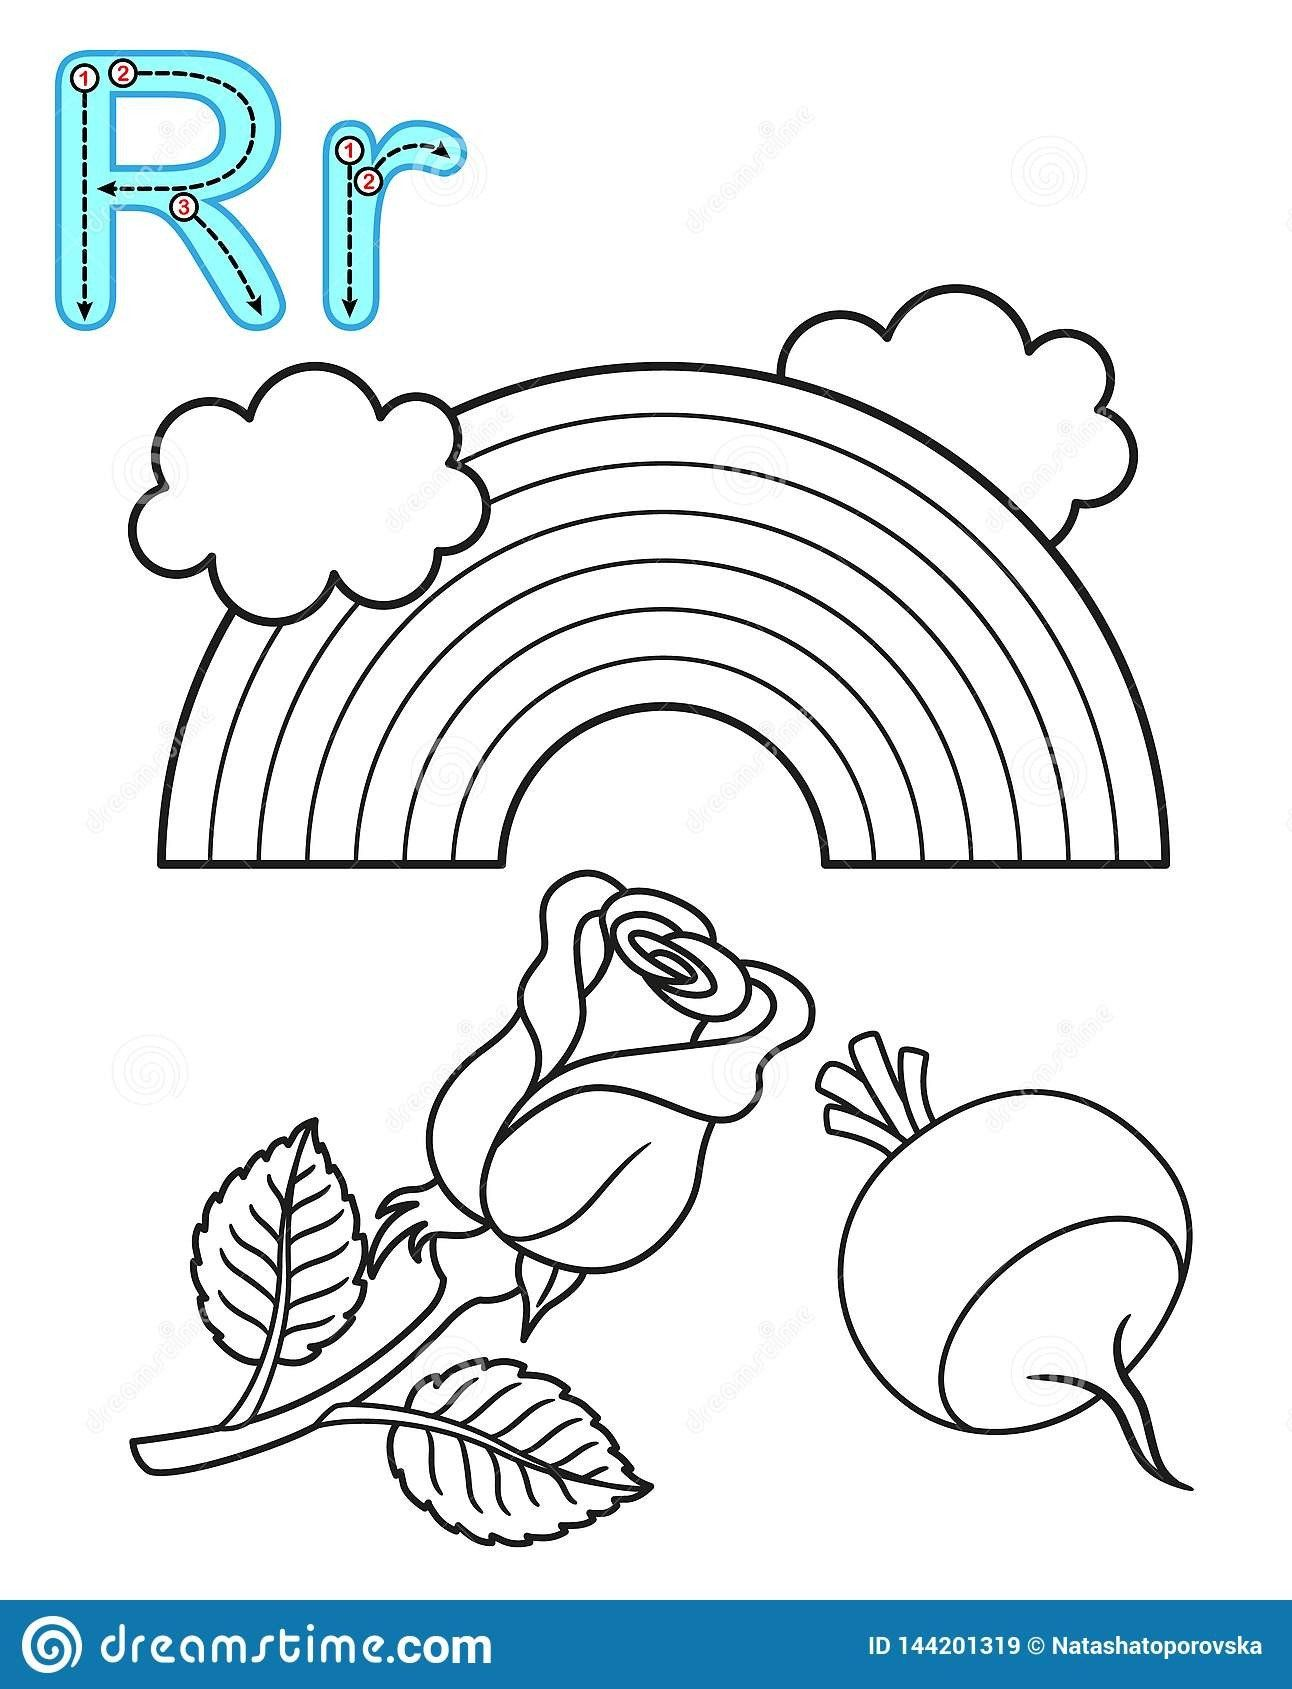 Letter P Coloring Pages Luxury Coloring Pages Printable